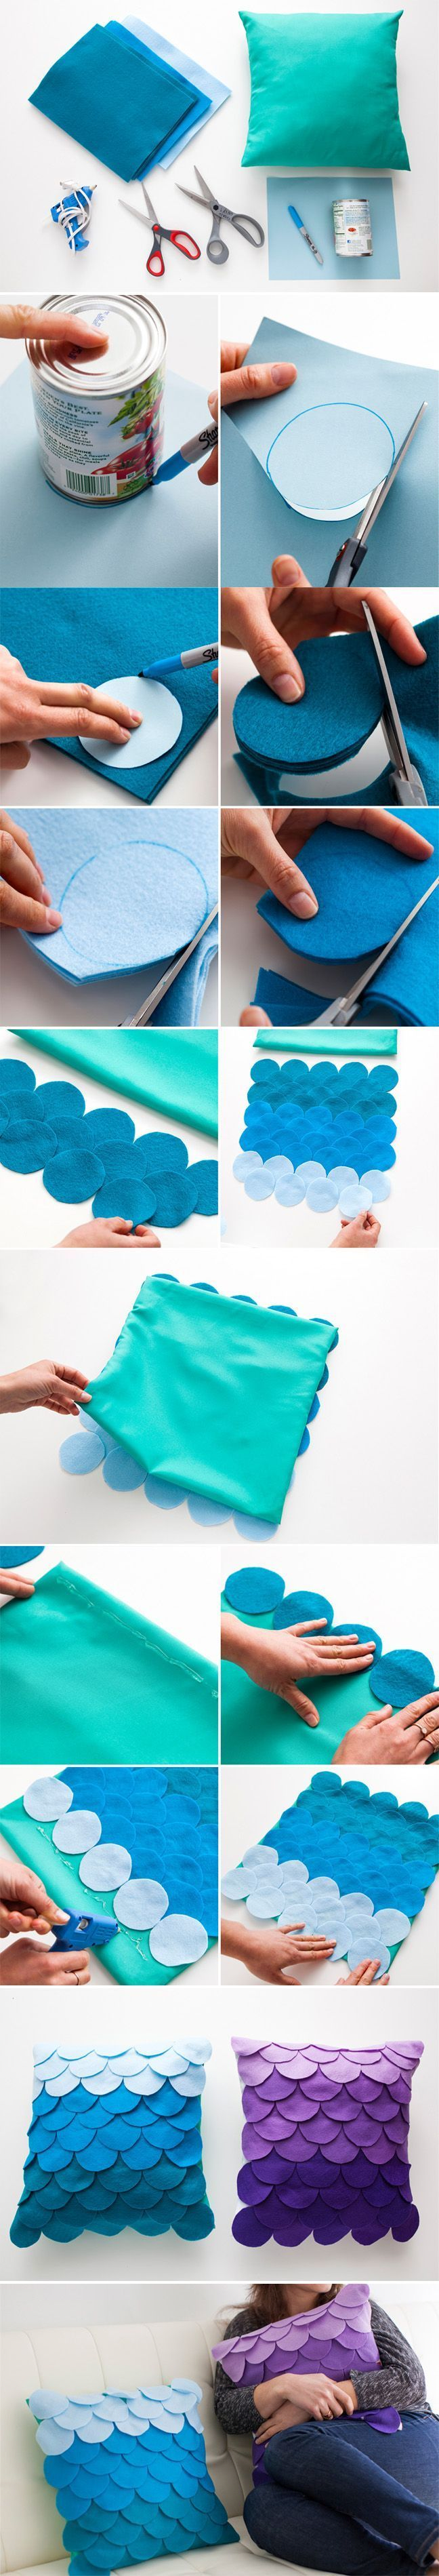 Awesome scalloped ombre DIY pillow made of felt circles. Love it!